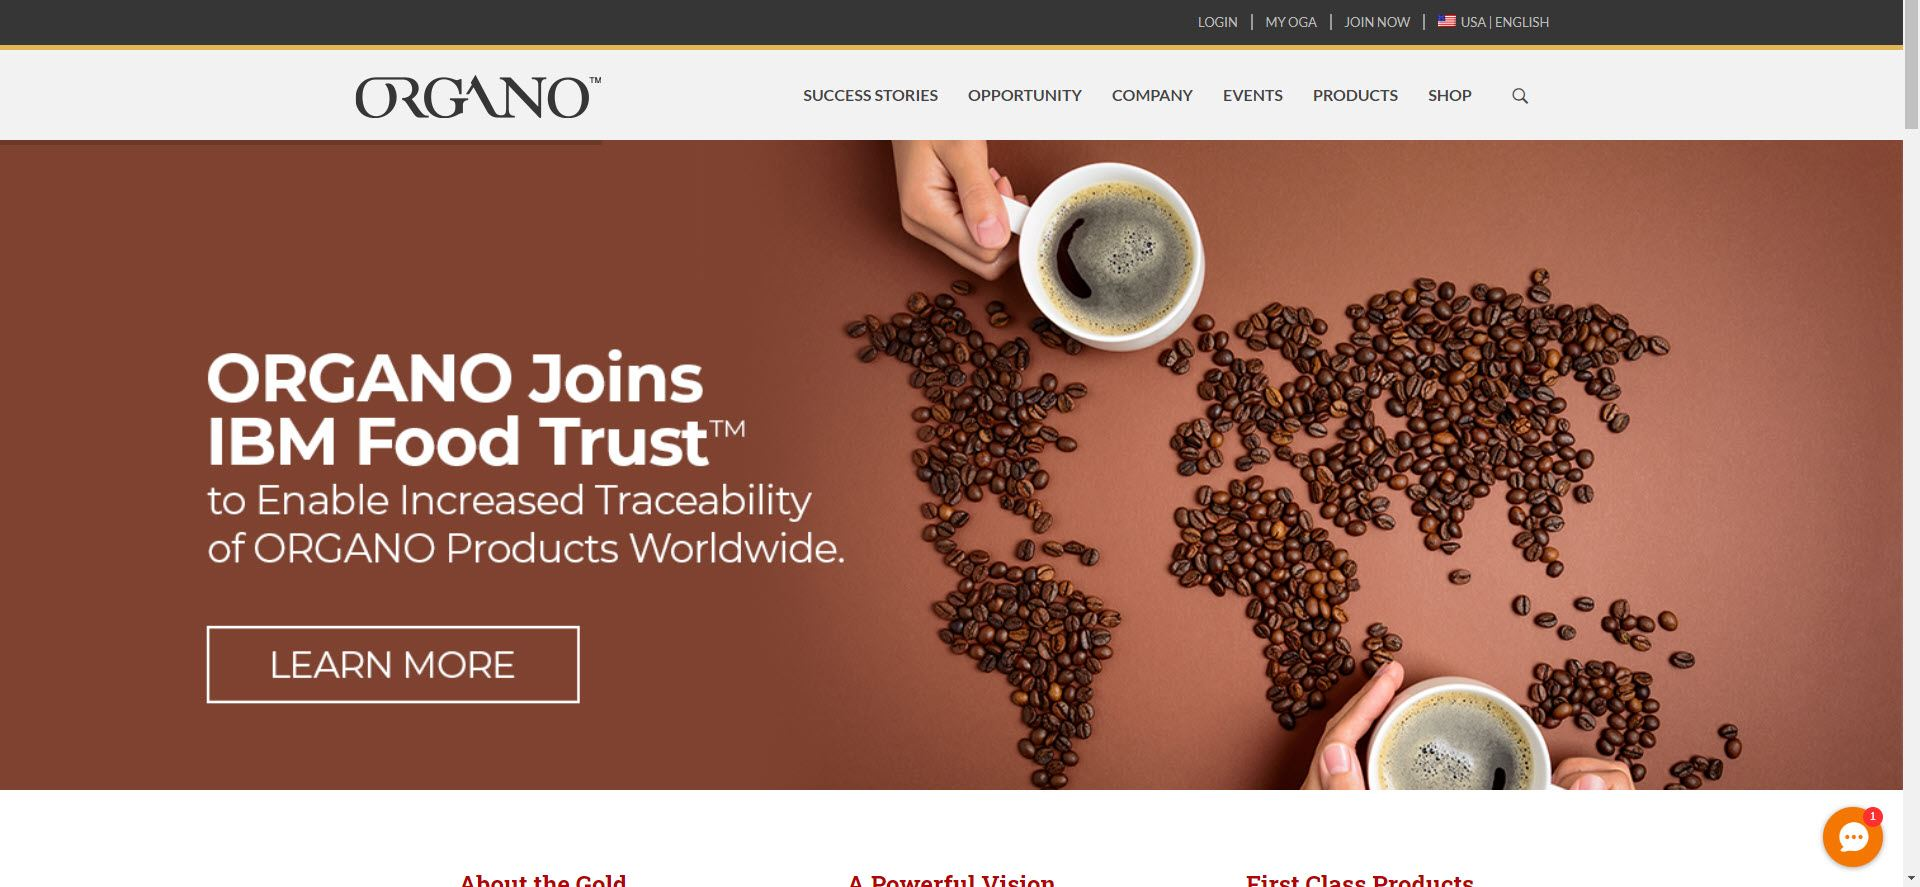 Organo MLM Review - Home